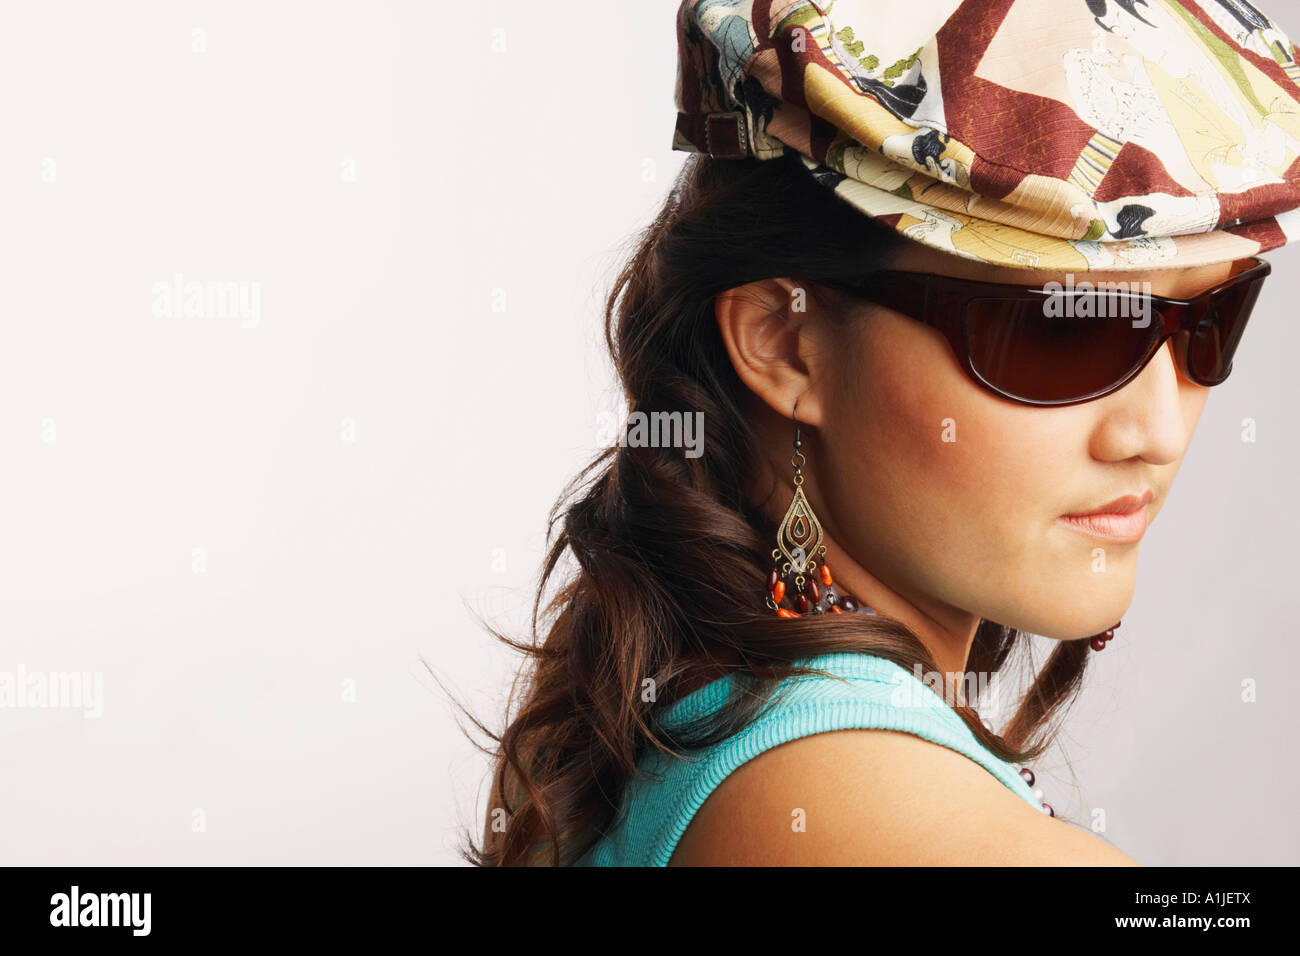 8a3777f80dd82 Young Woman Wearing Flat Cap Stock Photos   Young Woman Wearing Flat ...